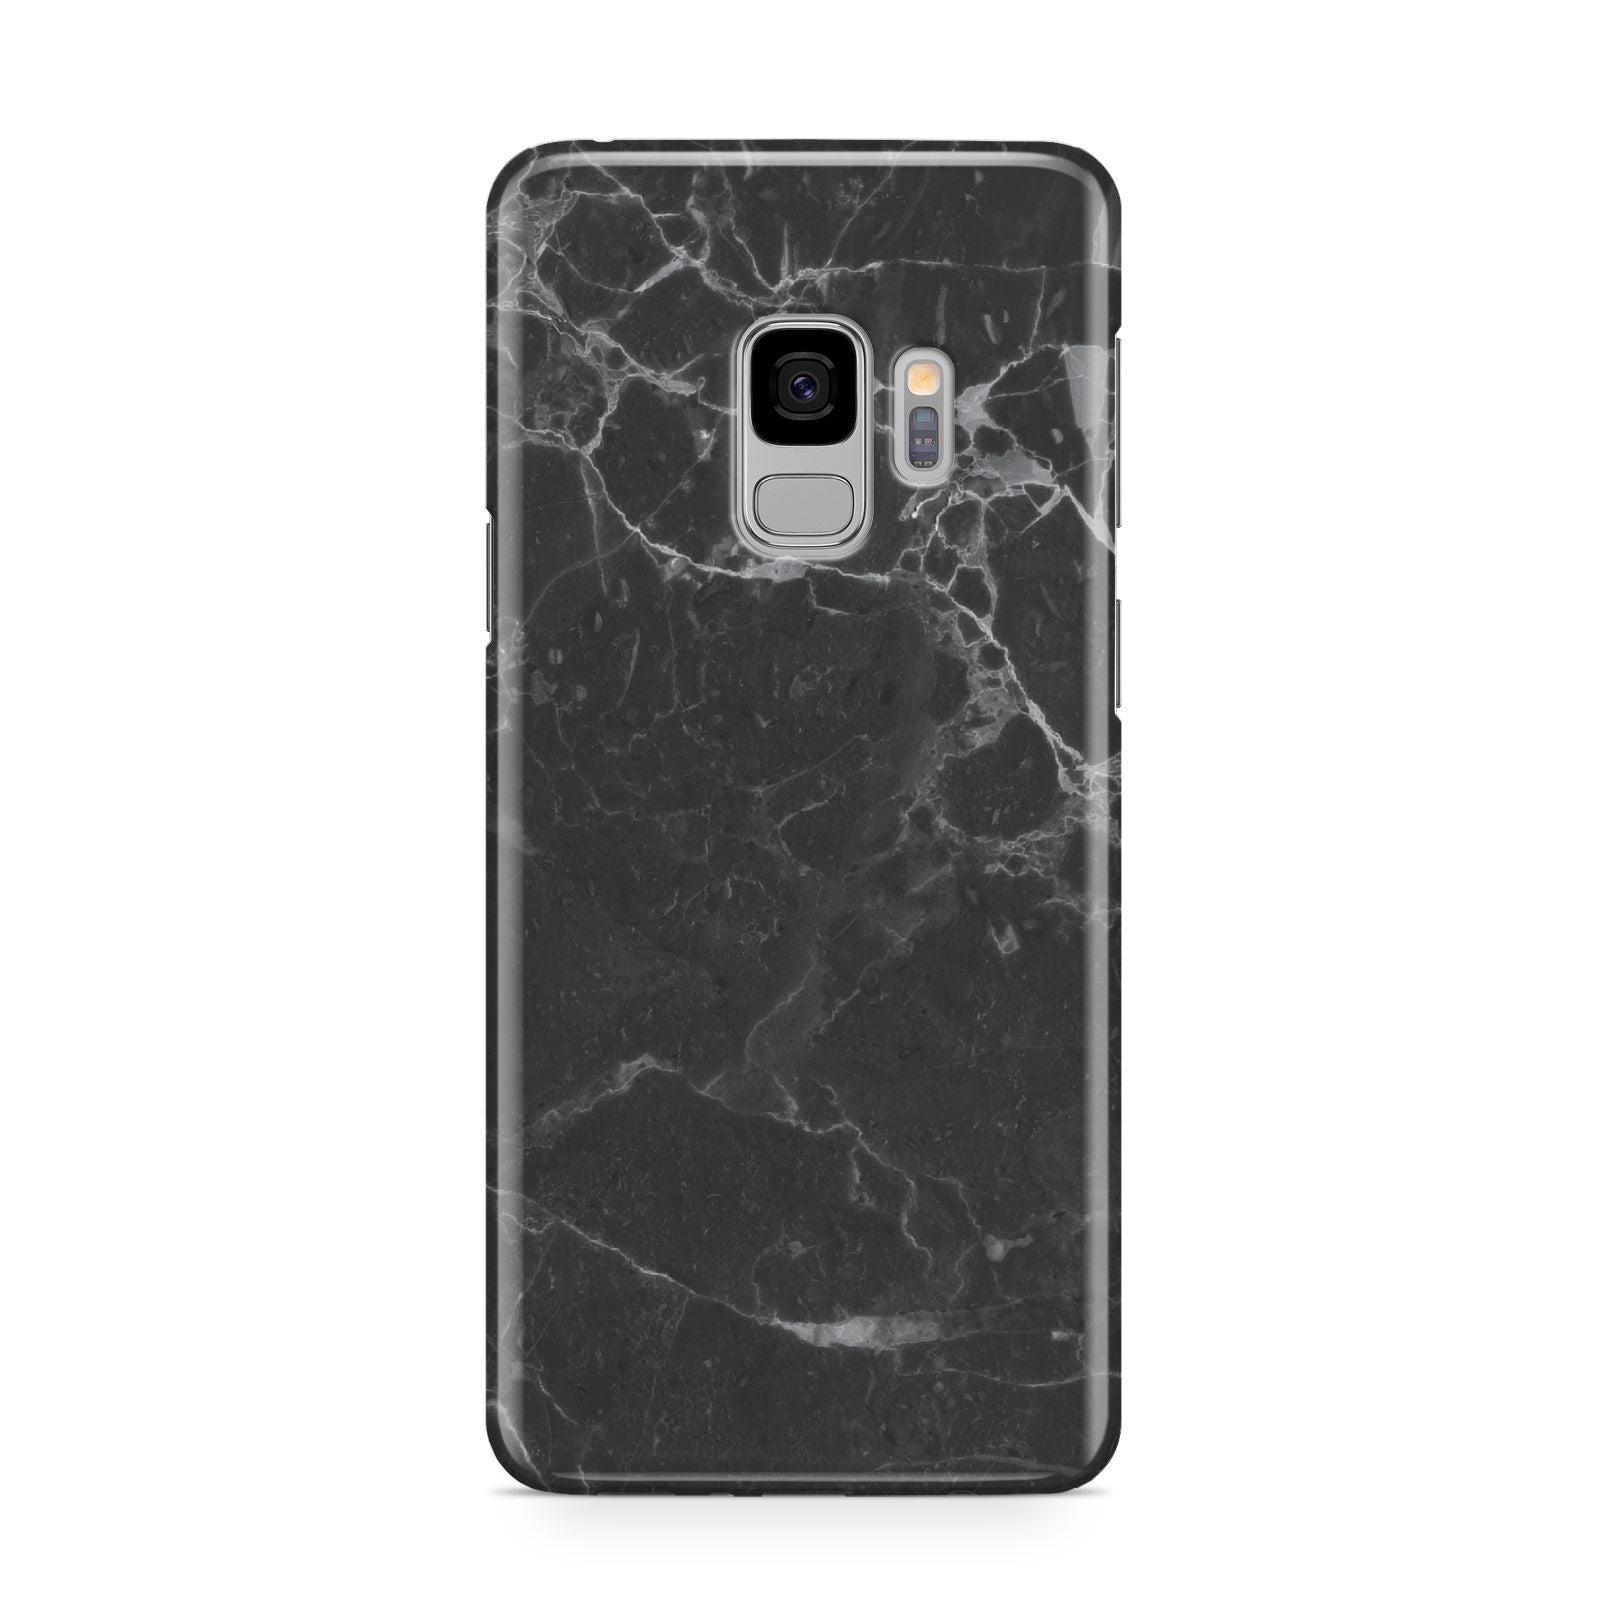 Faux Marble Effect Black Samsung Galaxy S9 Case